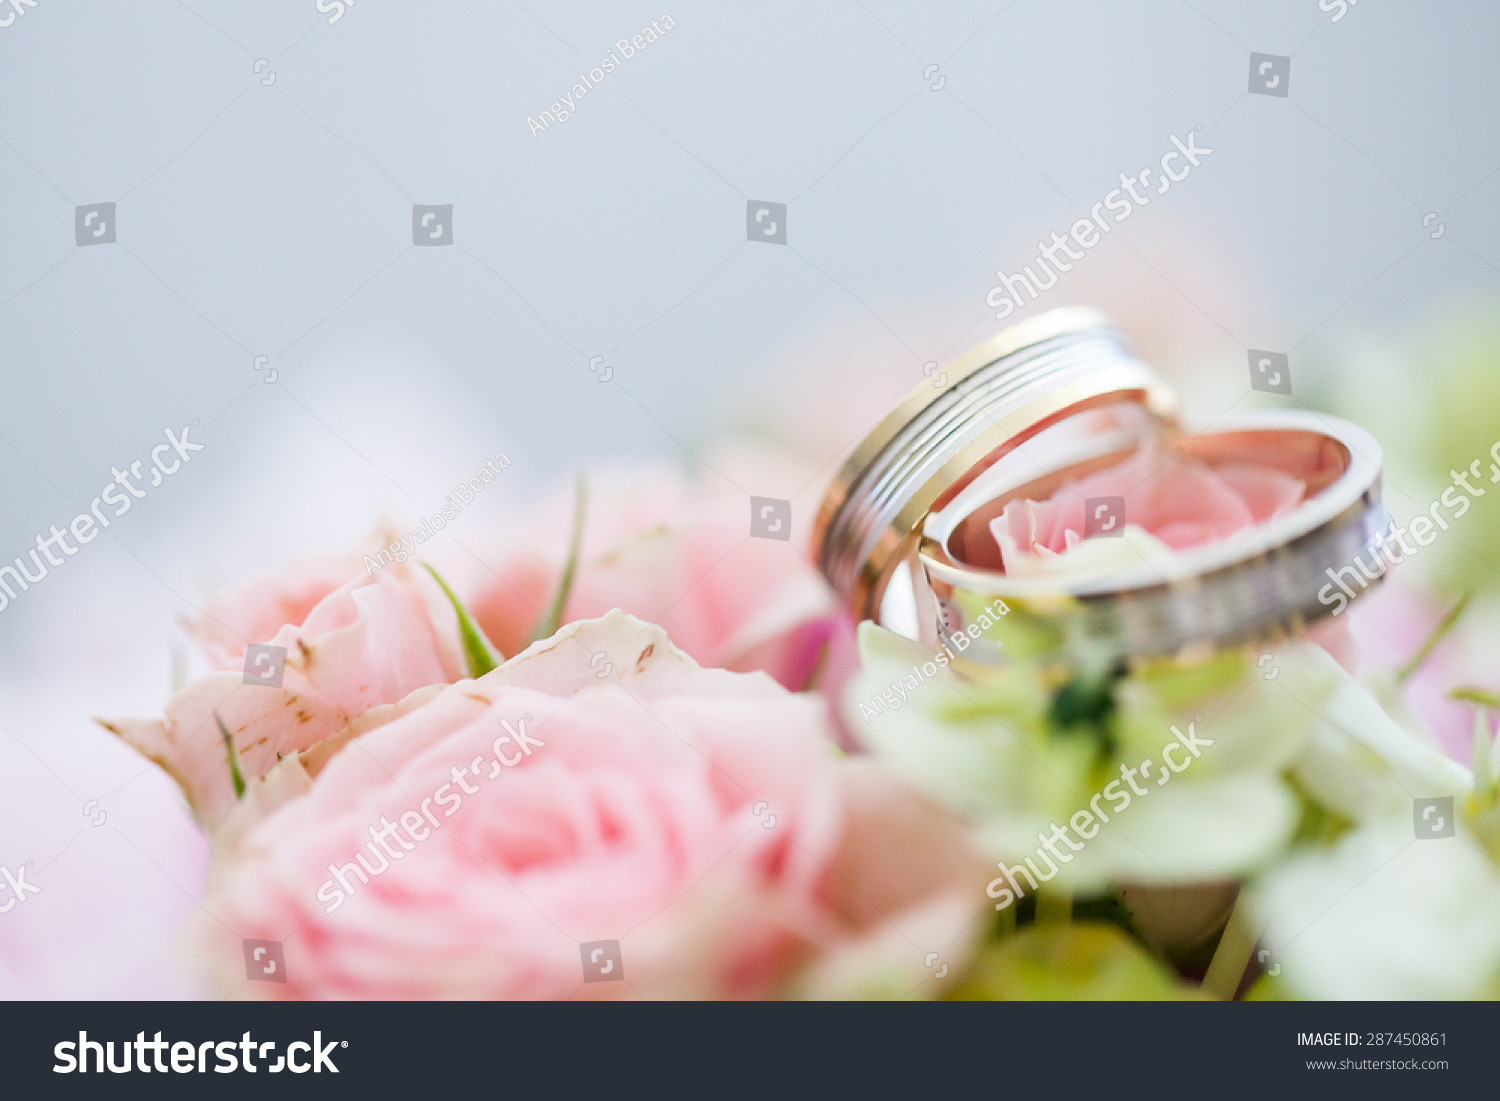 wedding romantic free romance flowers cookie download flower iphone japanese rose lovely wallpaper garden cookies pretty photography roses beauty beautiful bouquet rings pink nature sweet ring love